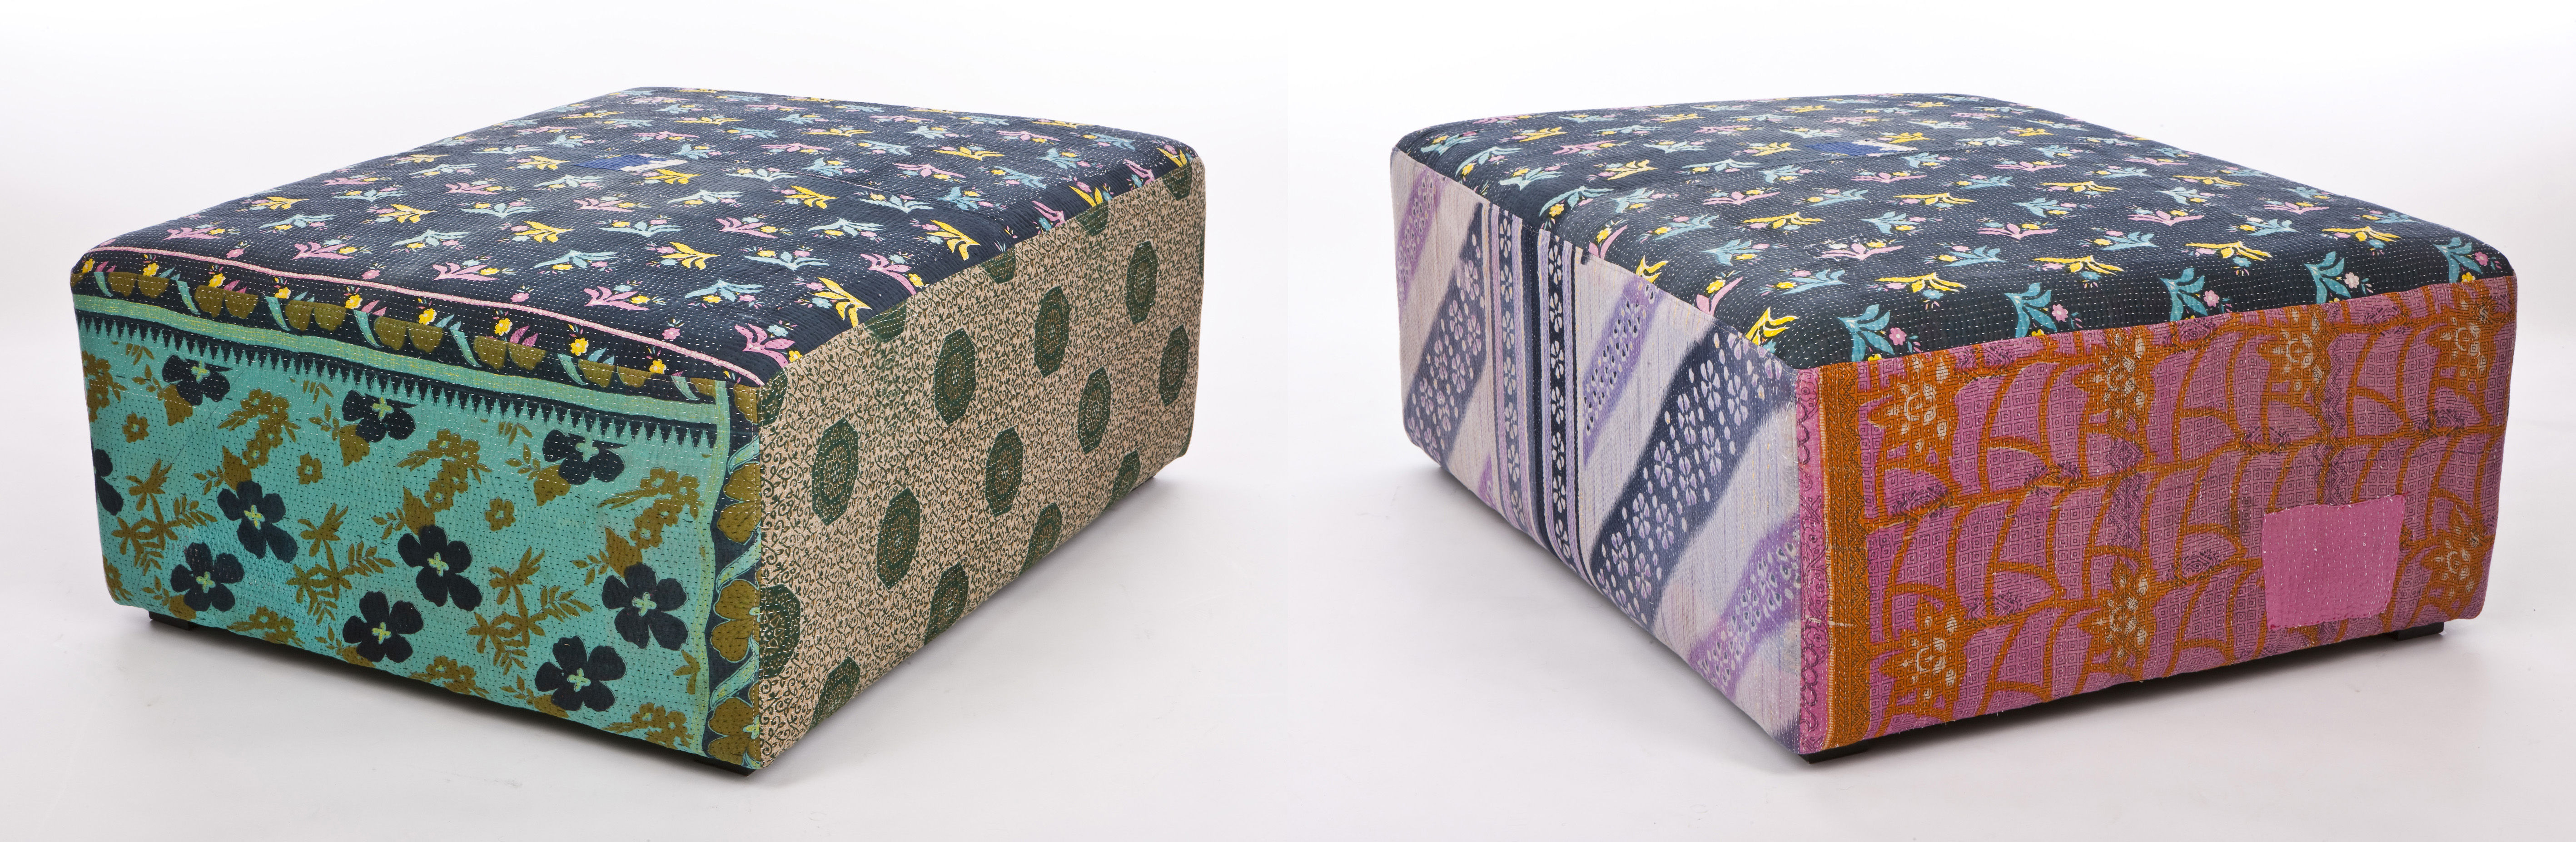 Antique Quilt Pouf Multicoloured By Hay